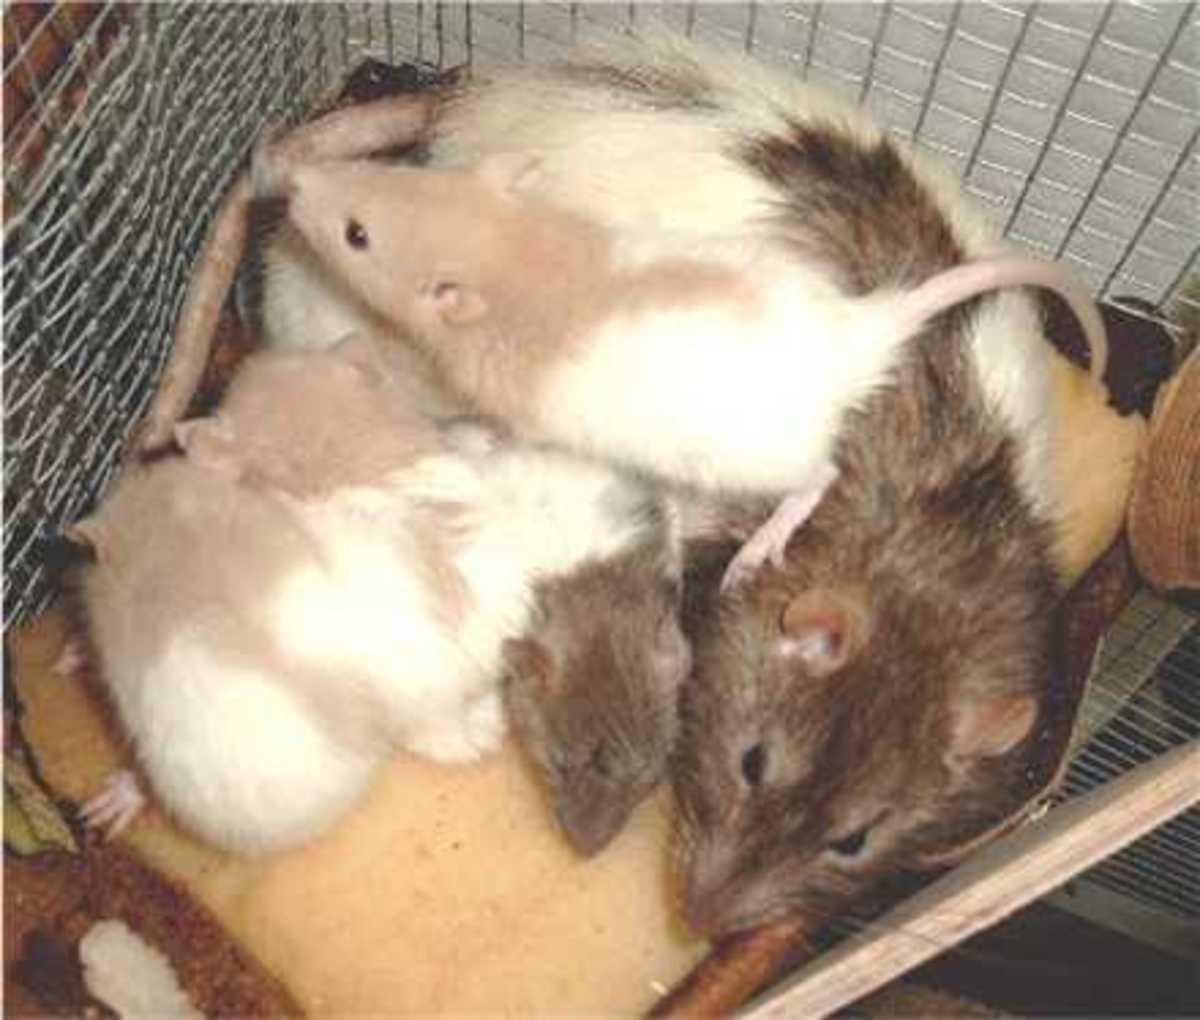 Rats 6 weeks old with their mother. By now you can give them to caring people. Males and females are already seperated.